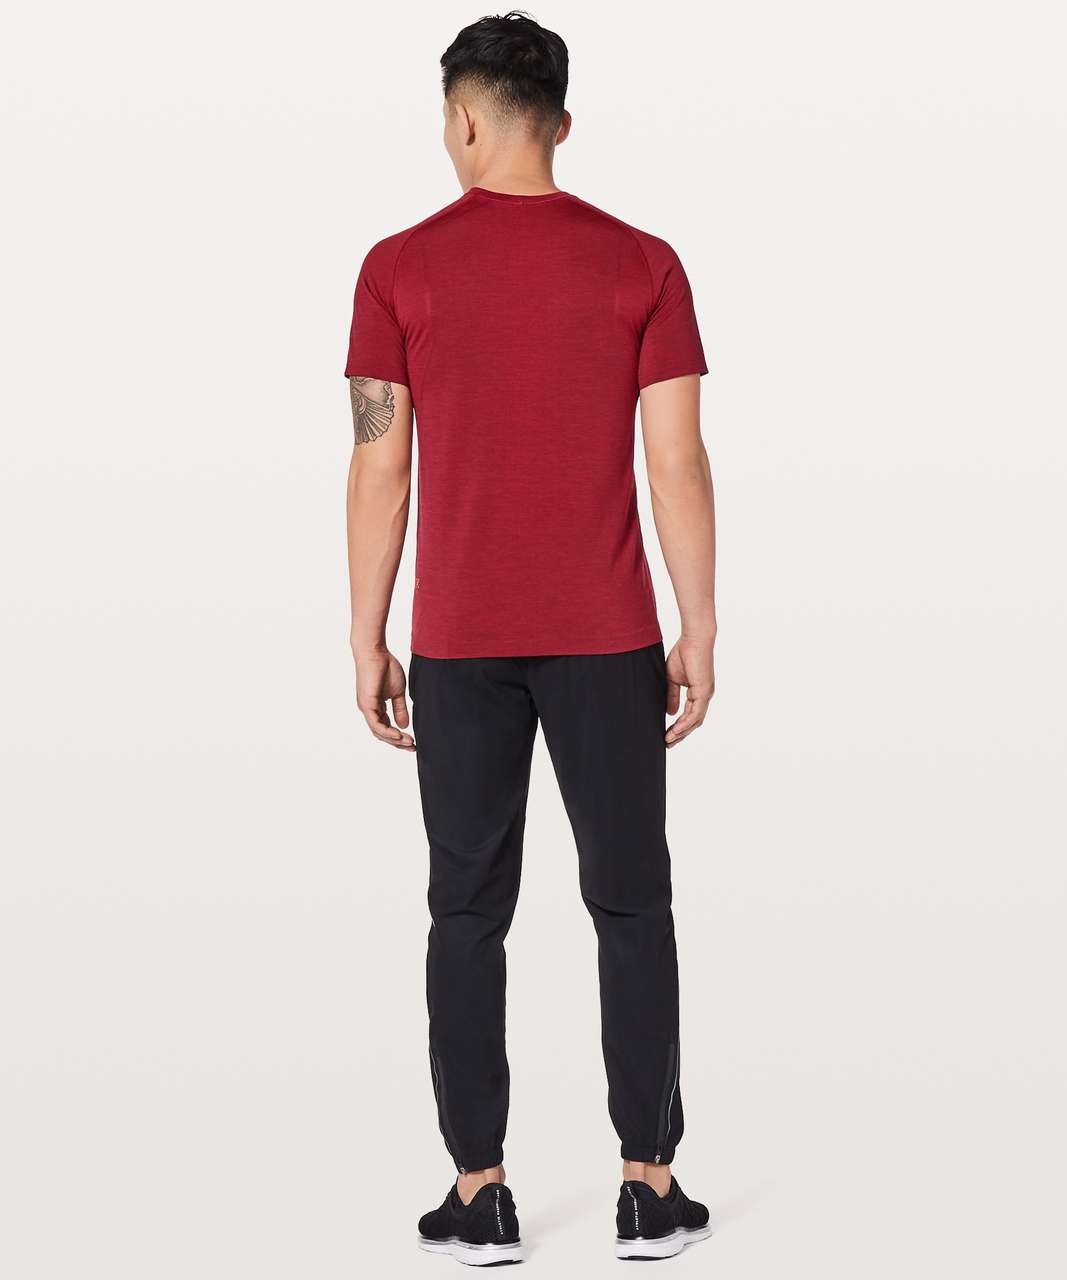 Lululemon Metal Vent Tech Short Sleeve - Bold Red / Deep Rouge